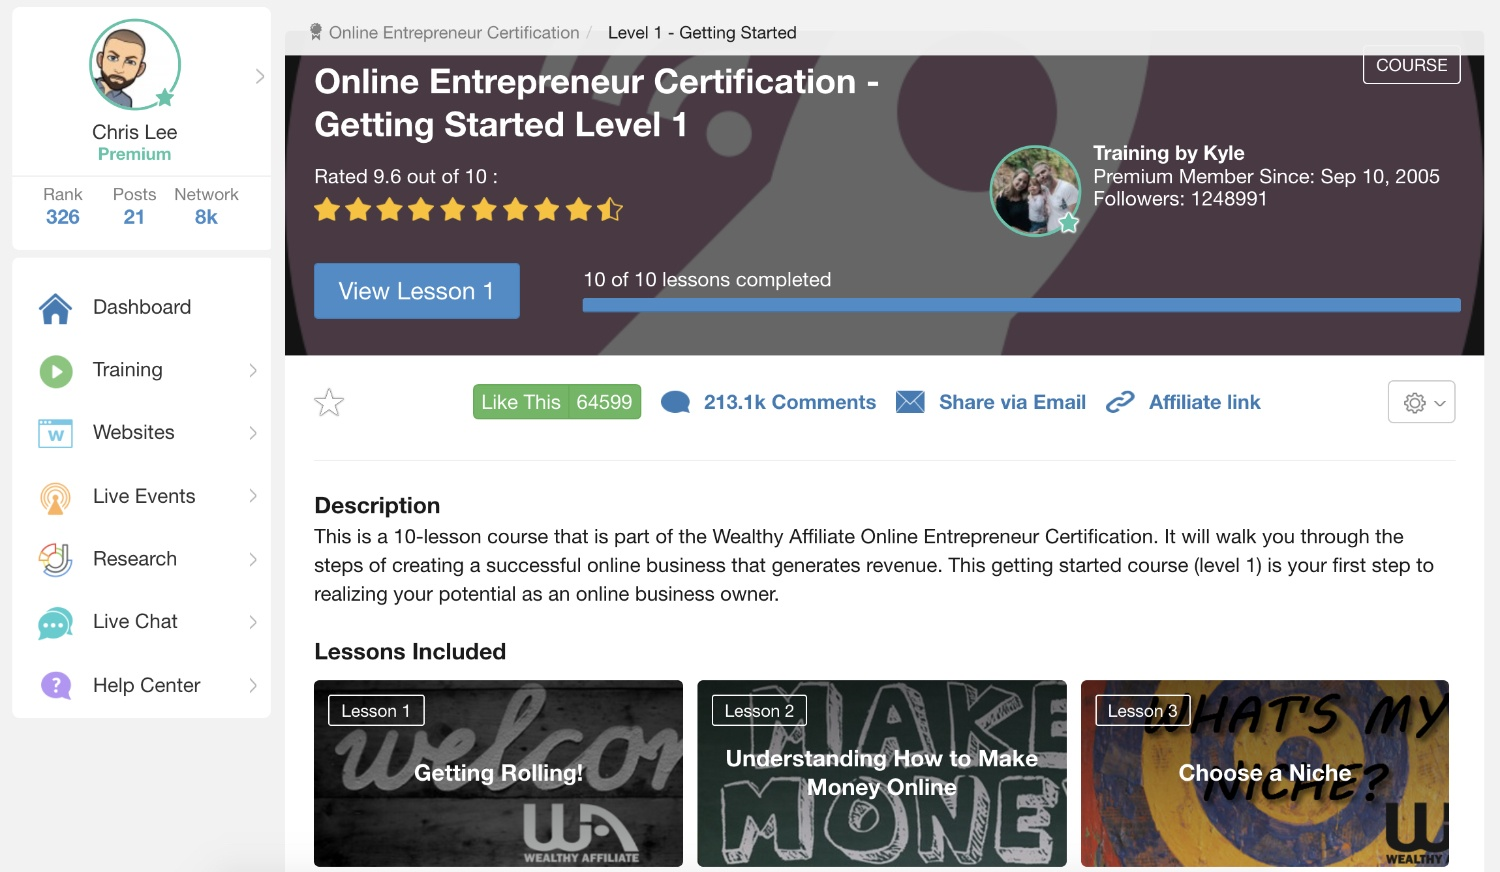 The online entrepreneur certification course inside Wealthy Affiliate